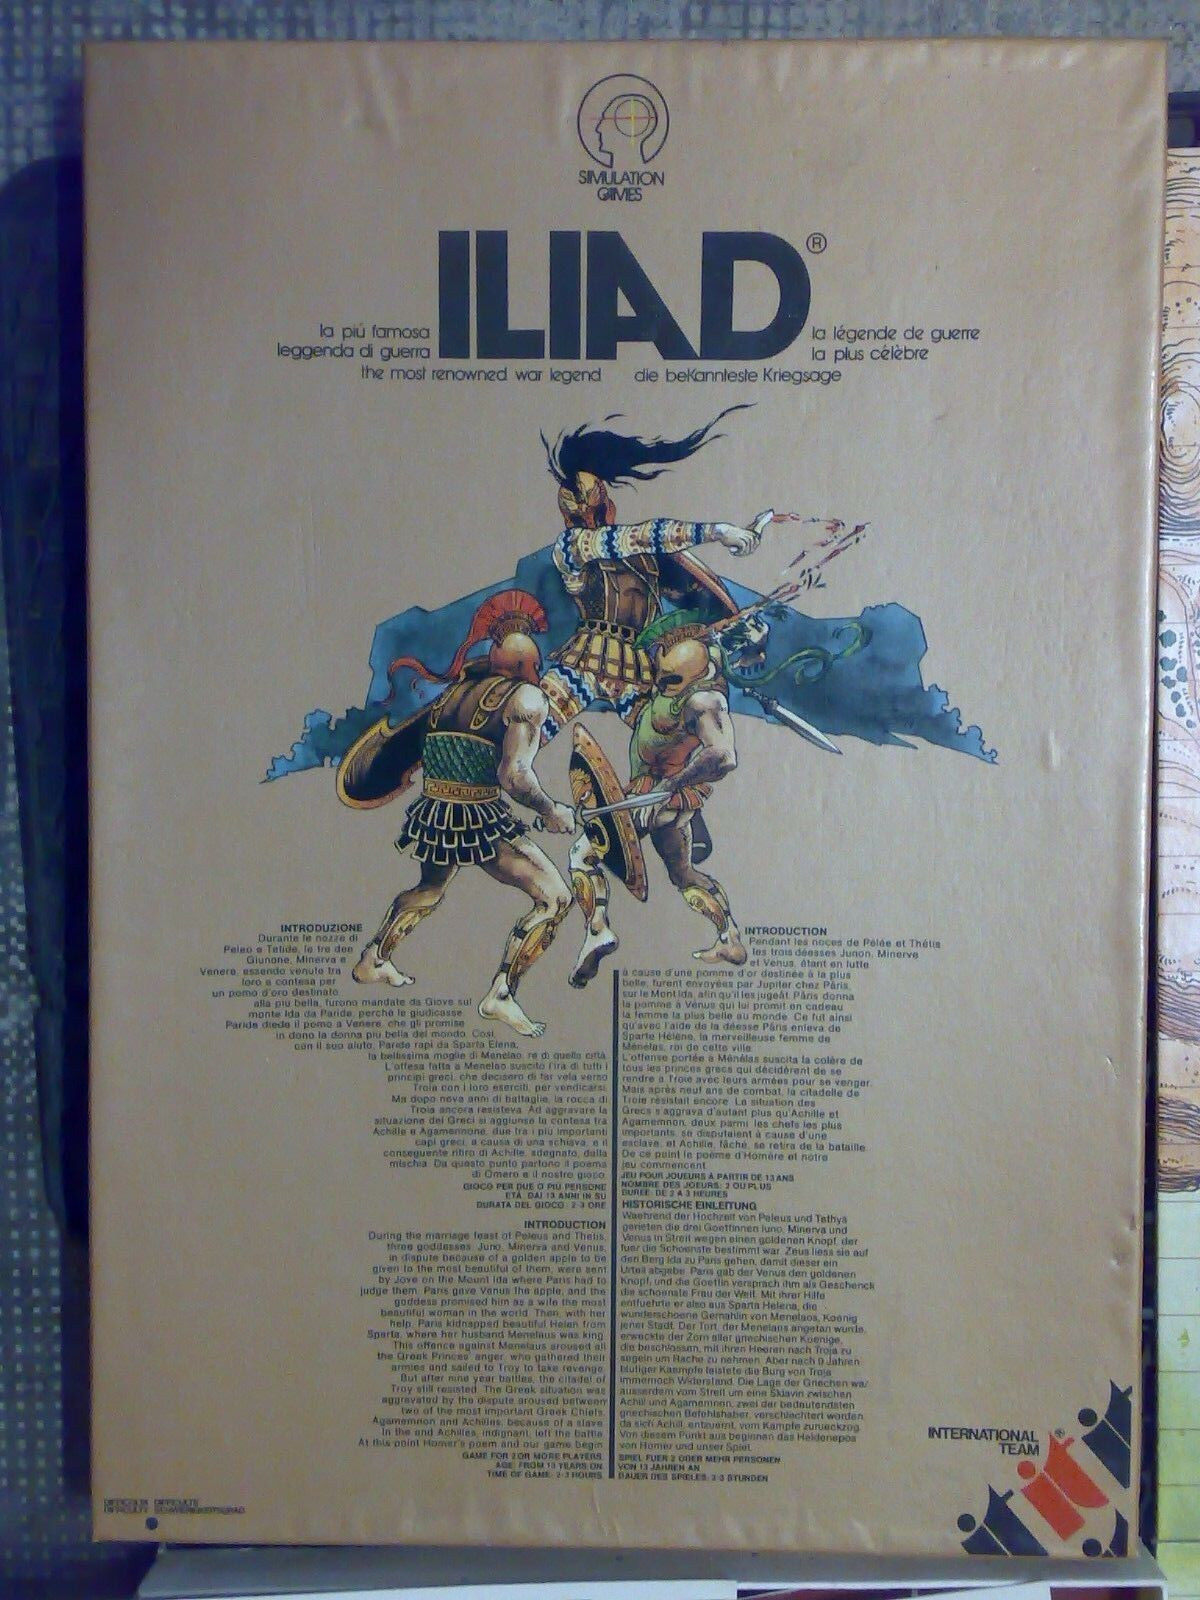 International  Team and Iliad Used  Game Table boardgame  connotation de luxe discret